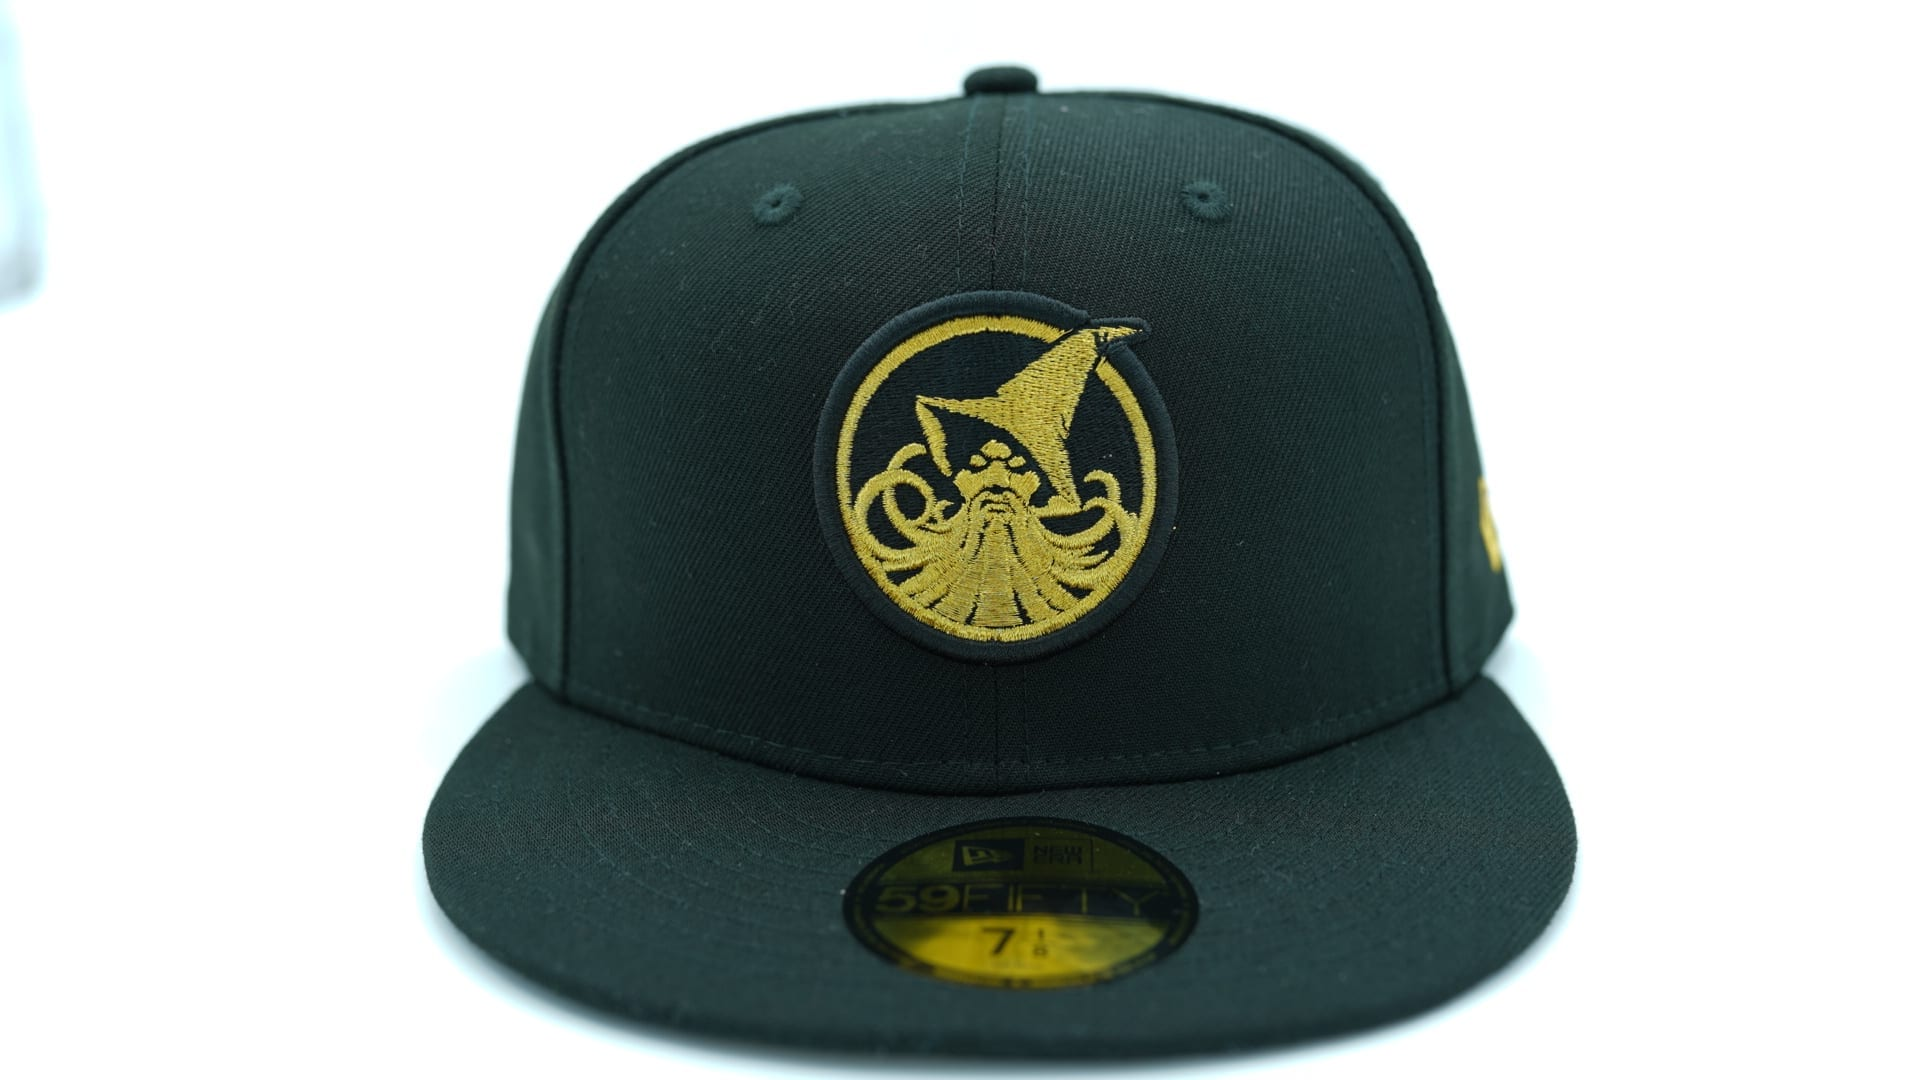 fitted leather baseball caps brown cap hat york black frequency era